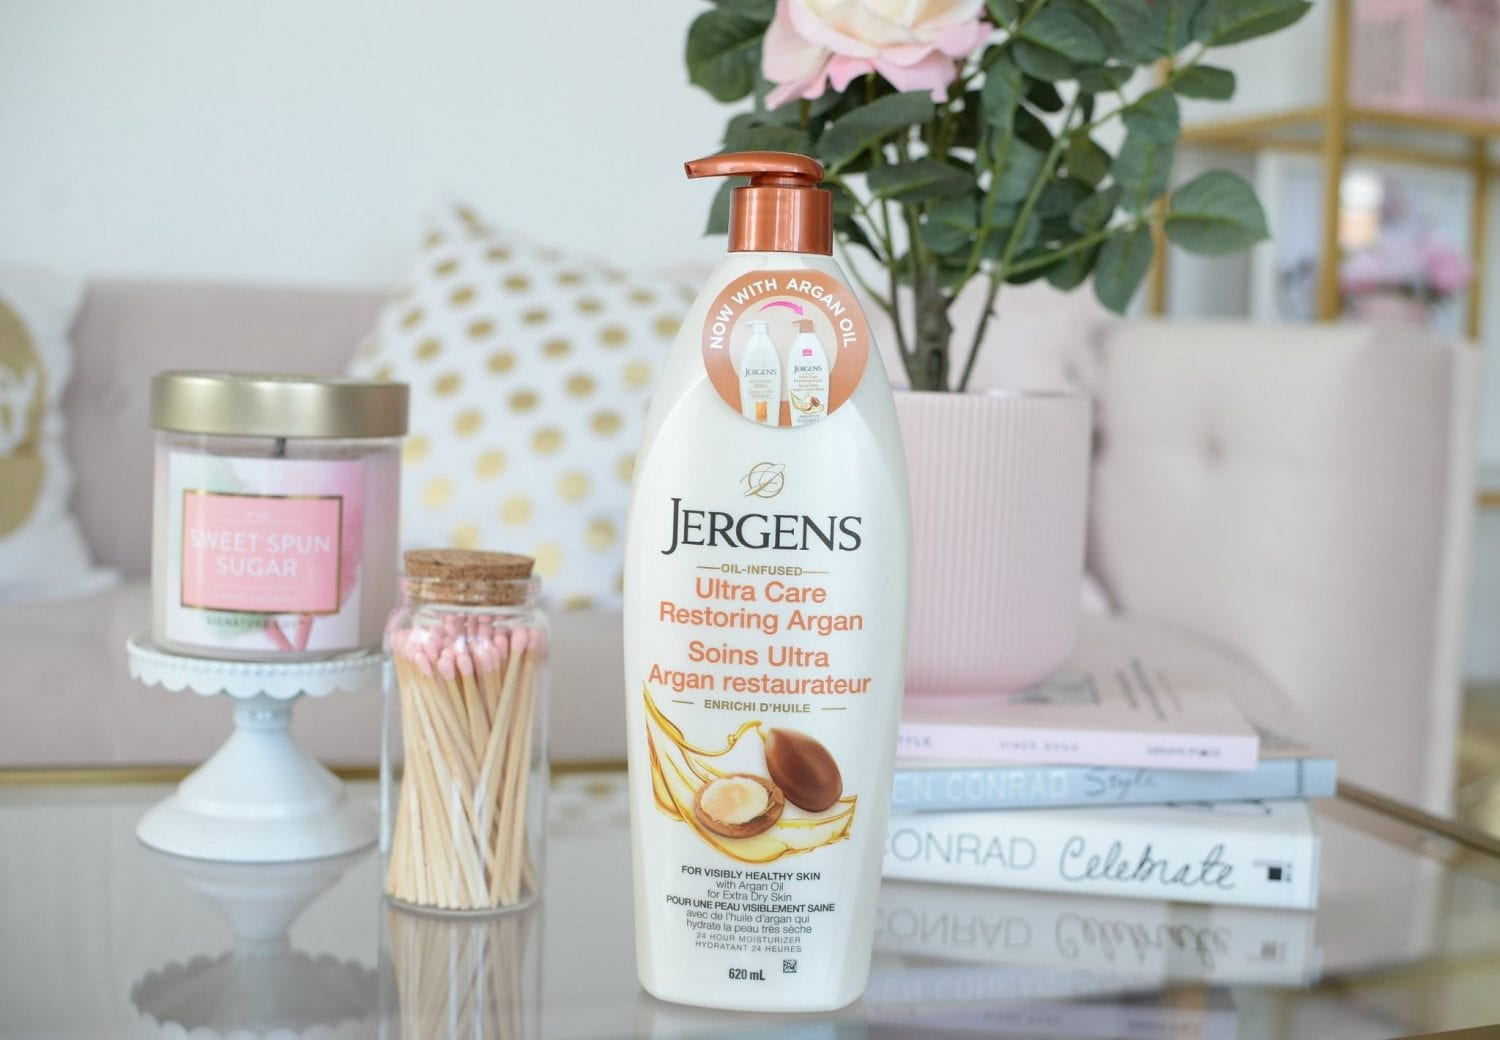 Jergens Ultra Care Restoring Argan Lotion